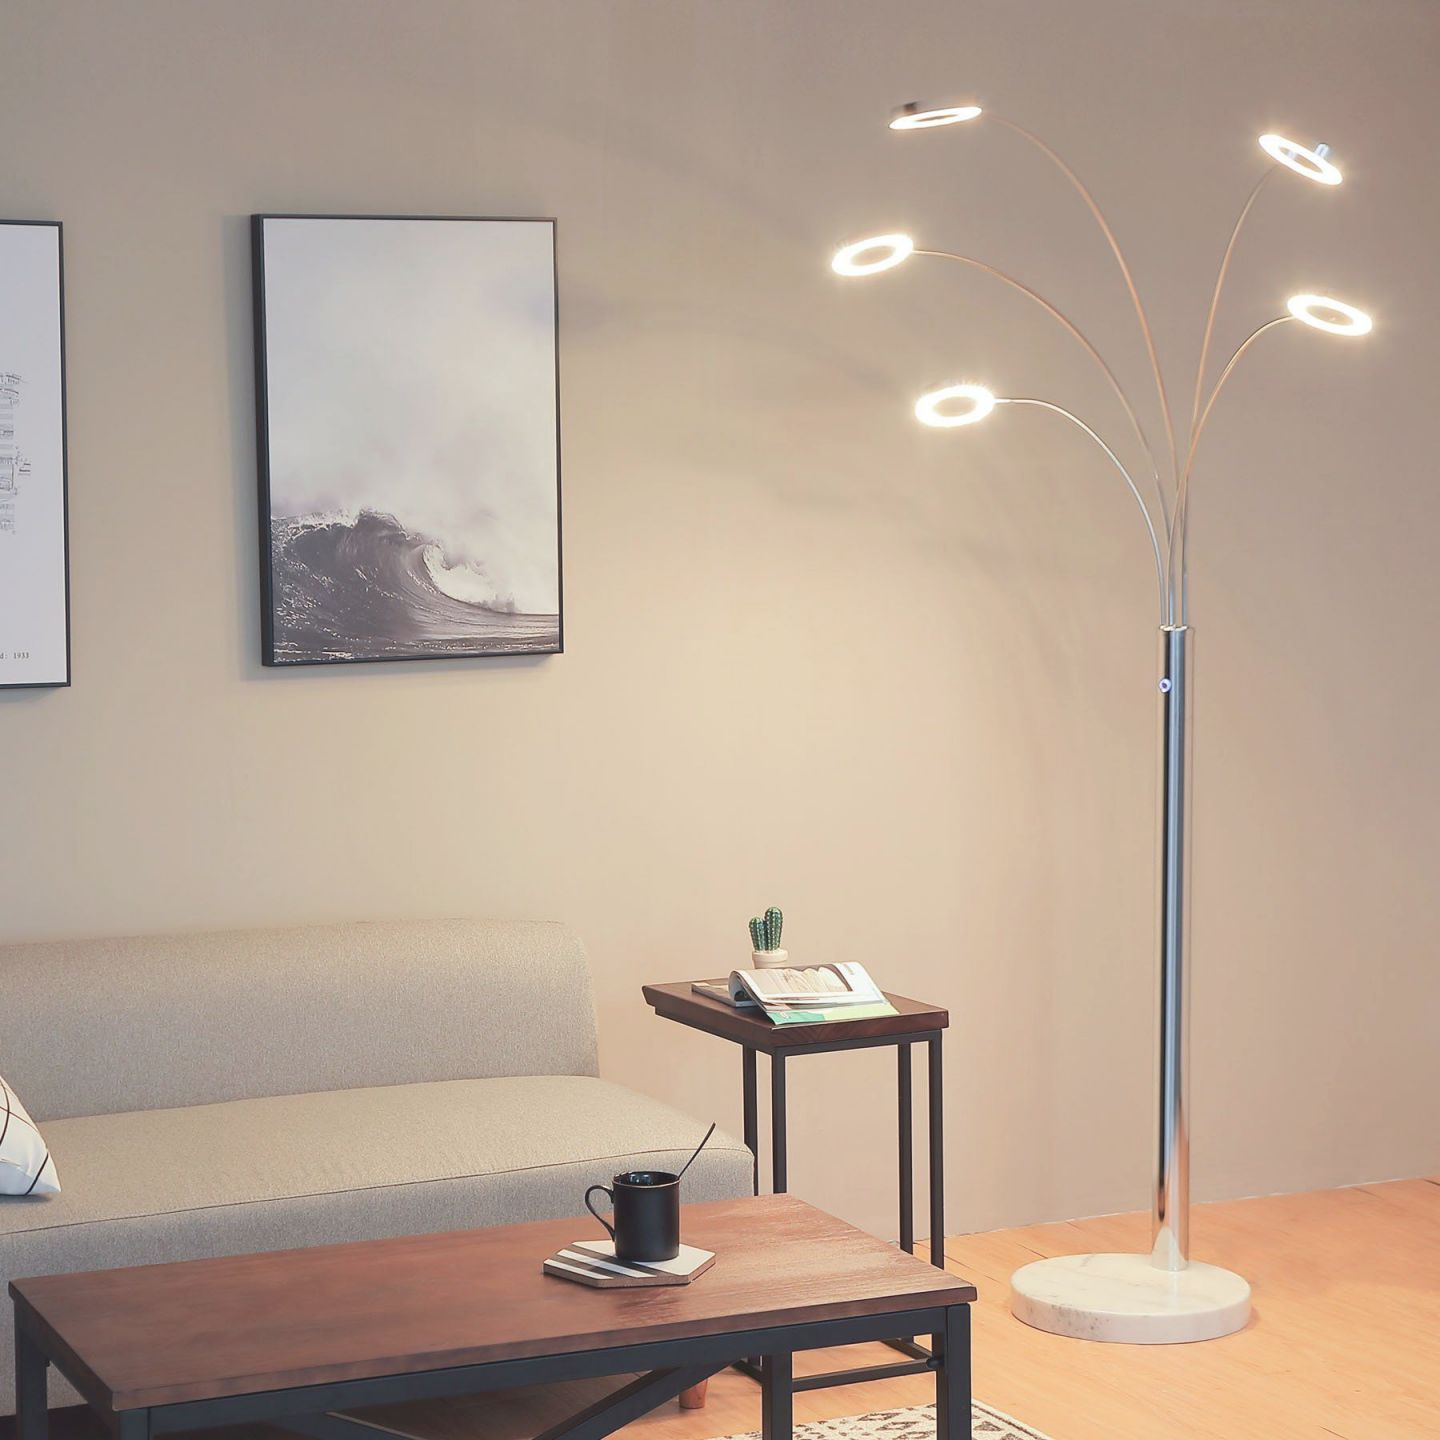 Coz Bright Led Floor Lamp With 5 Dimmable Lights Modern in 10+ Unique Gallery Bright Floor Lamp For Living Room